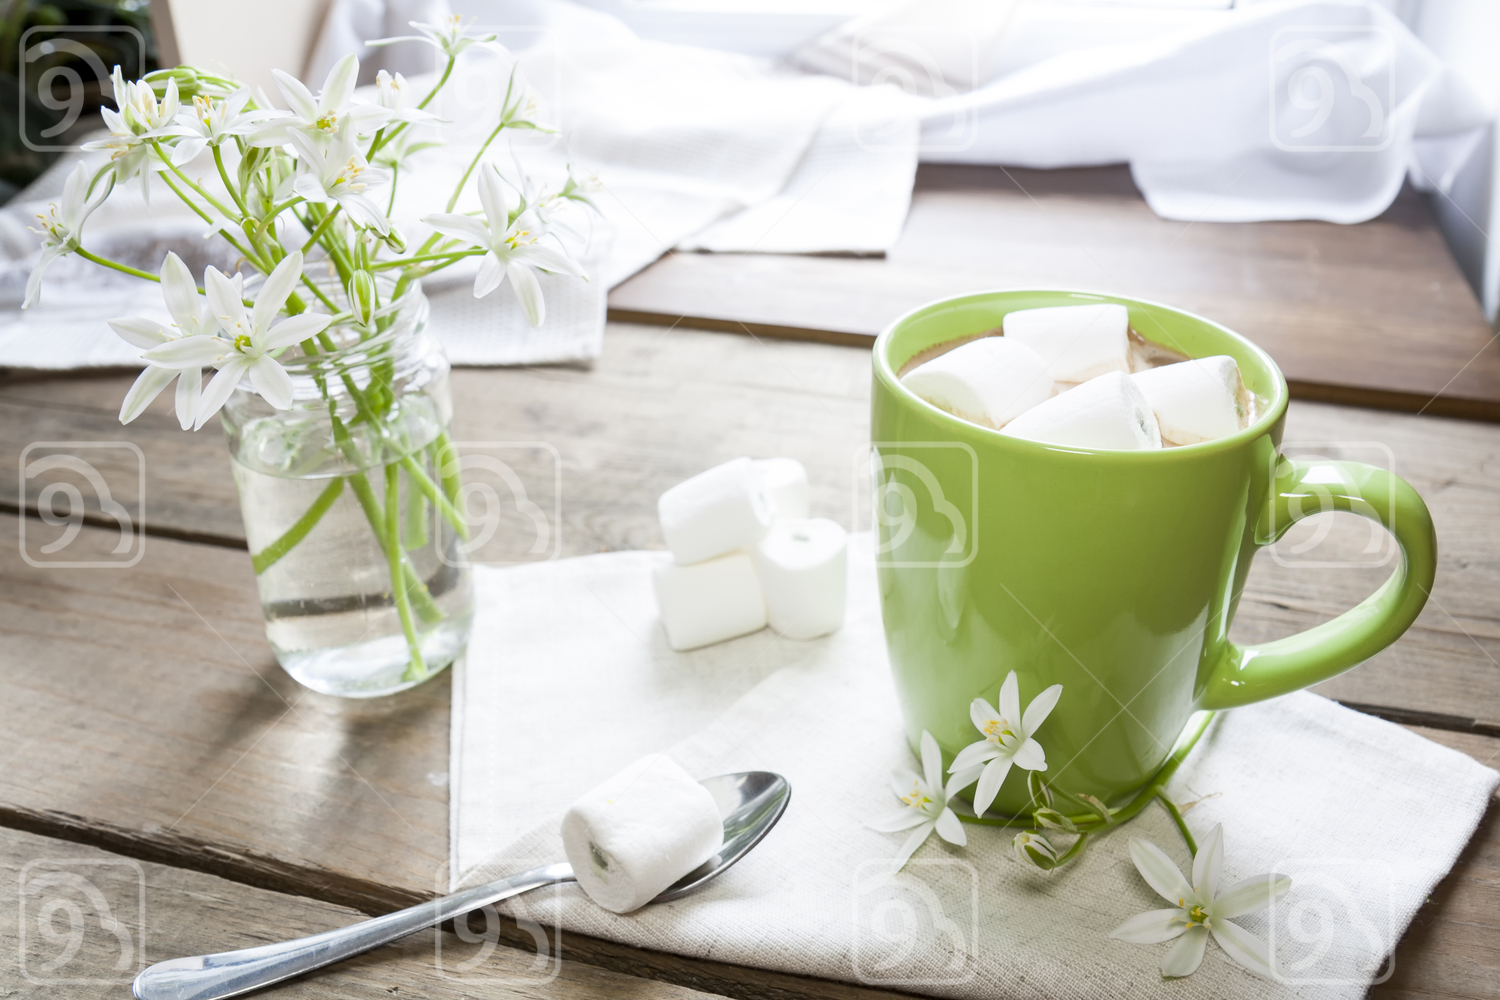 Hot cocoa with marshmallows in green cup